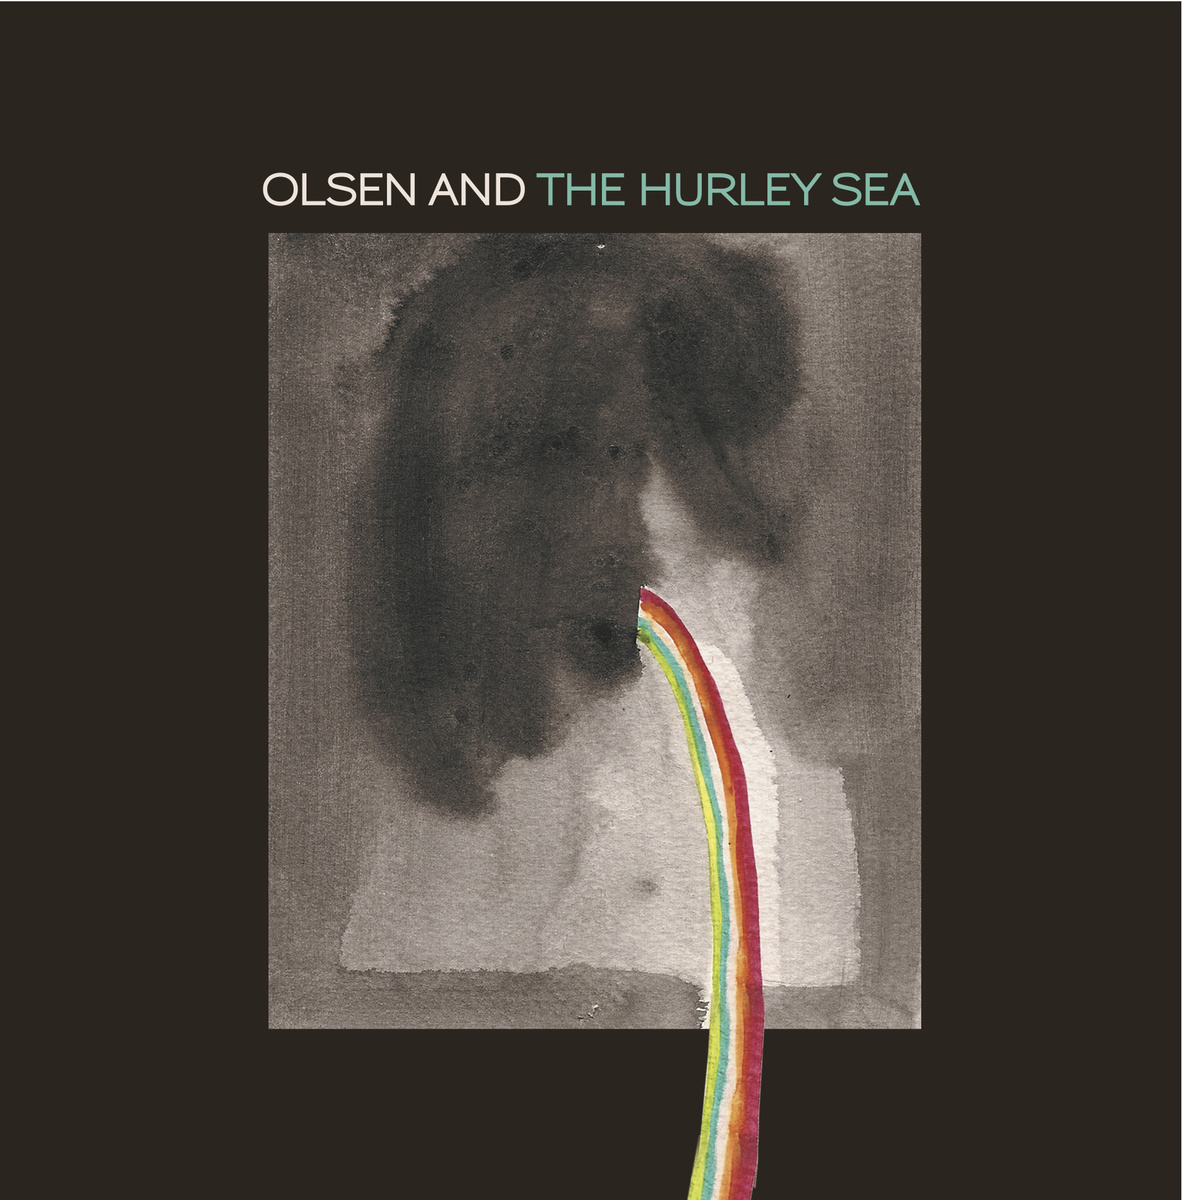 Olsen and the Hurley Sea - The Hurley Sea (YNFND, 2011)